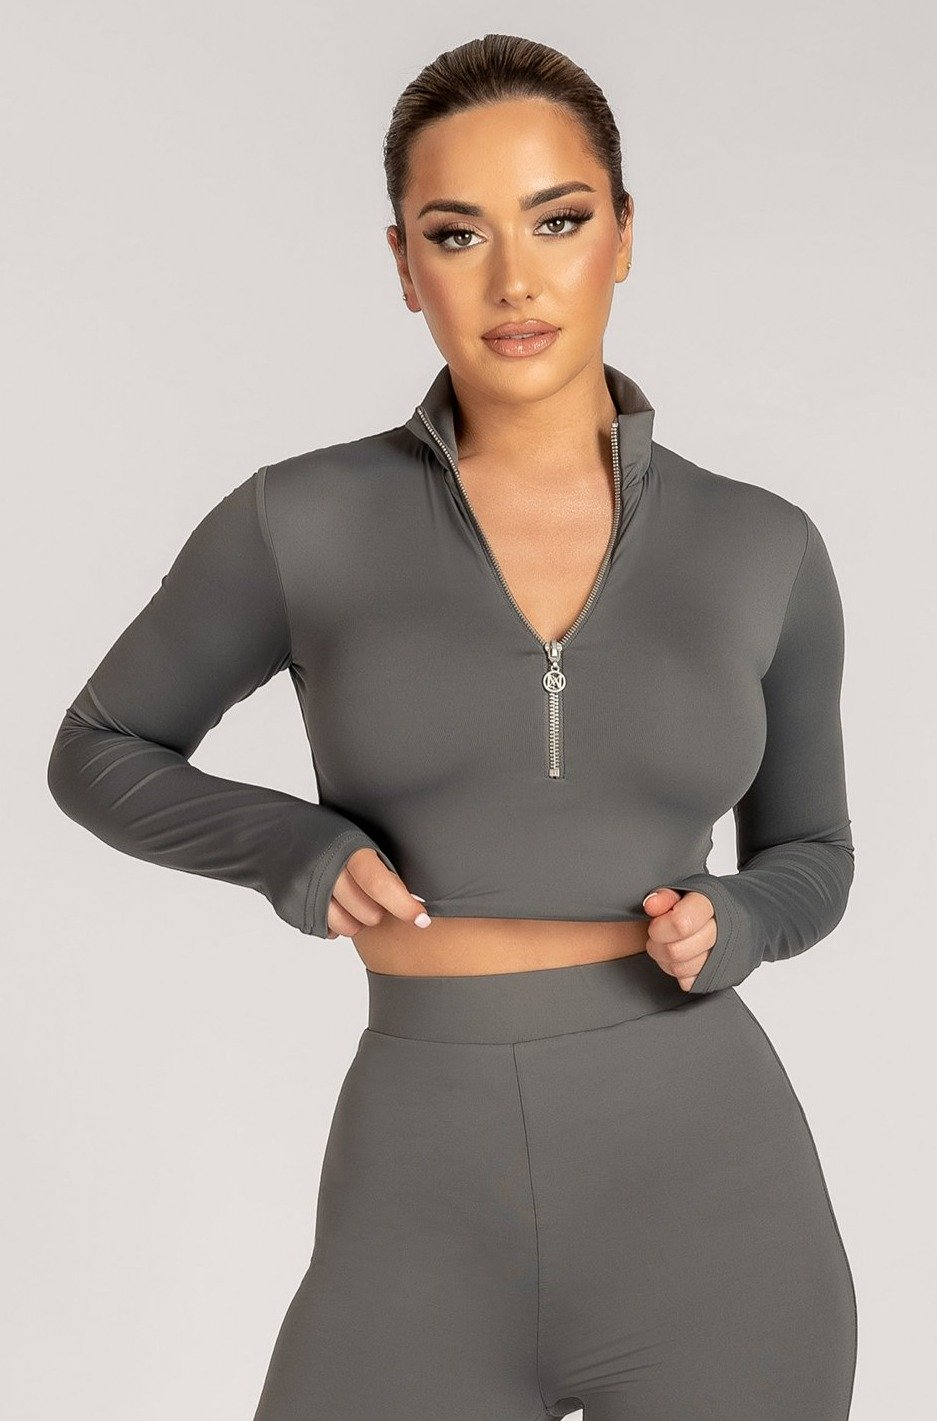 Ashlea Long Sleeve Zip Up Crop Top - Charcoal